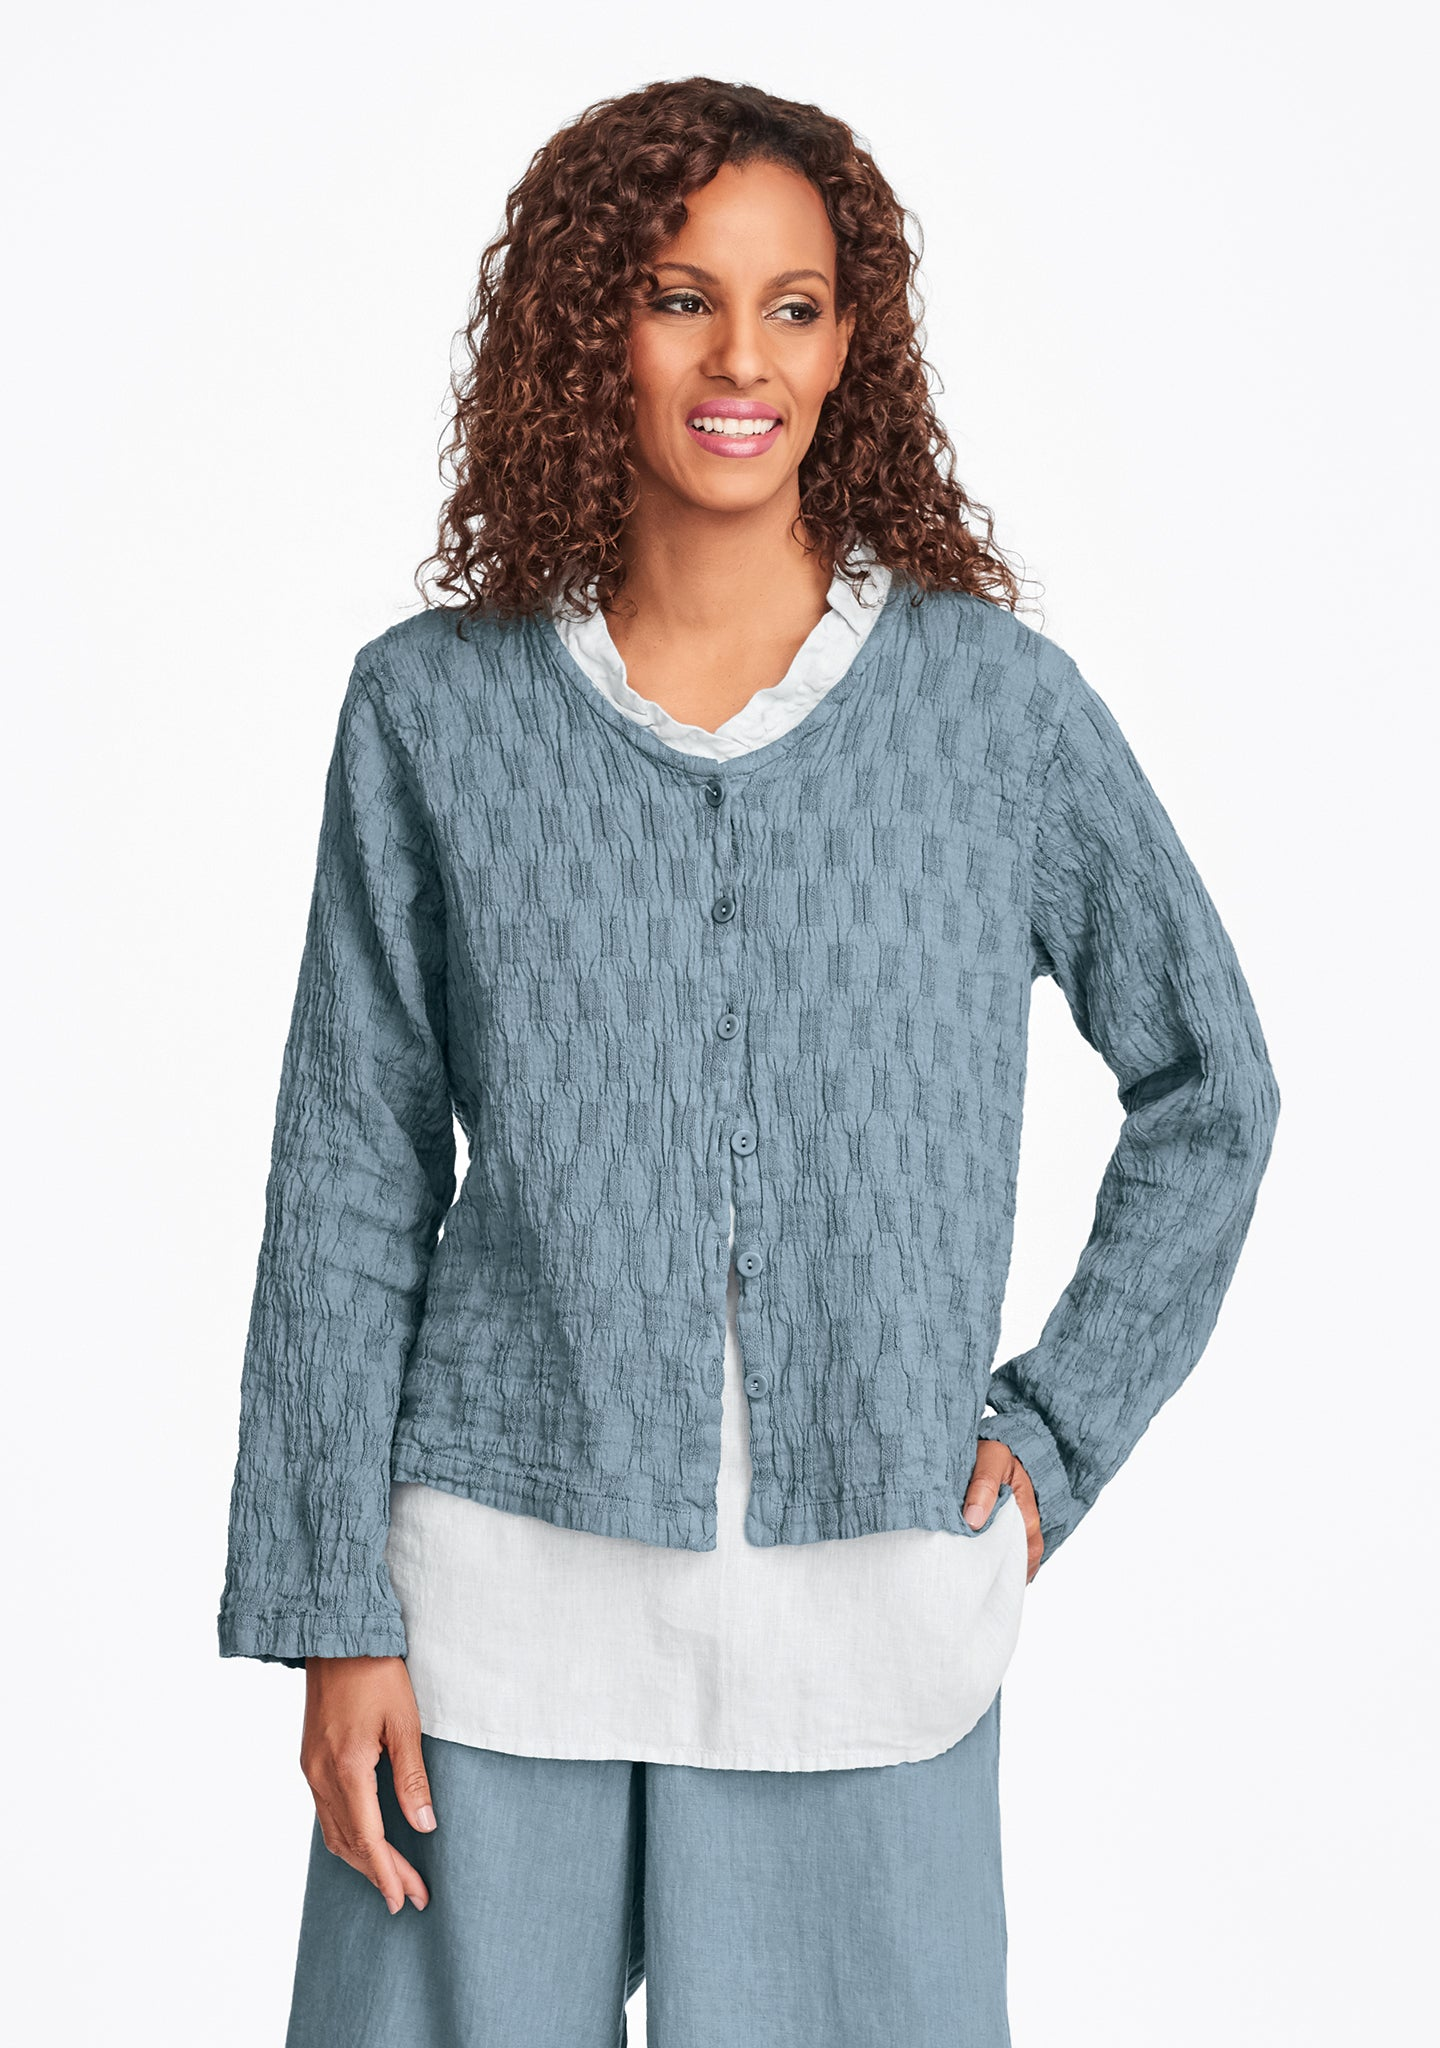 v neck cute cardi linen cardigan green